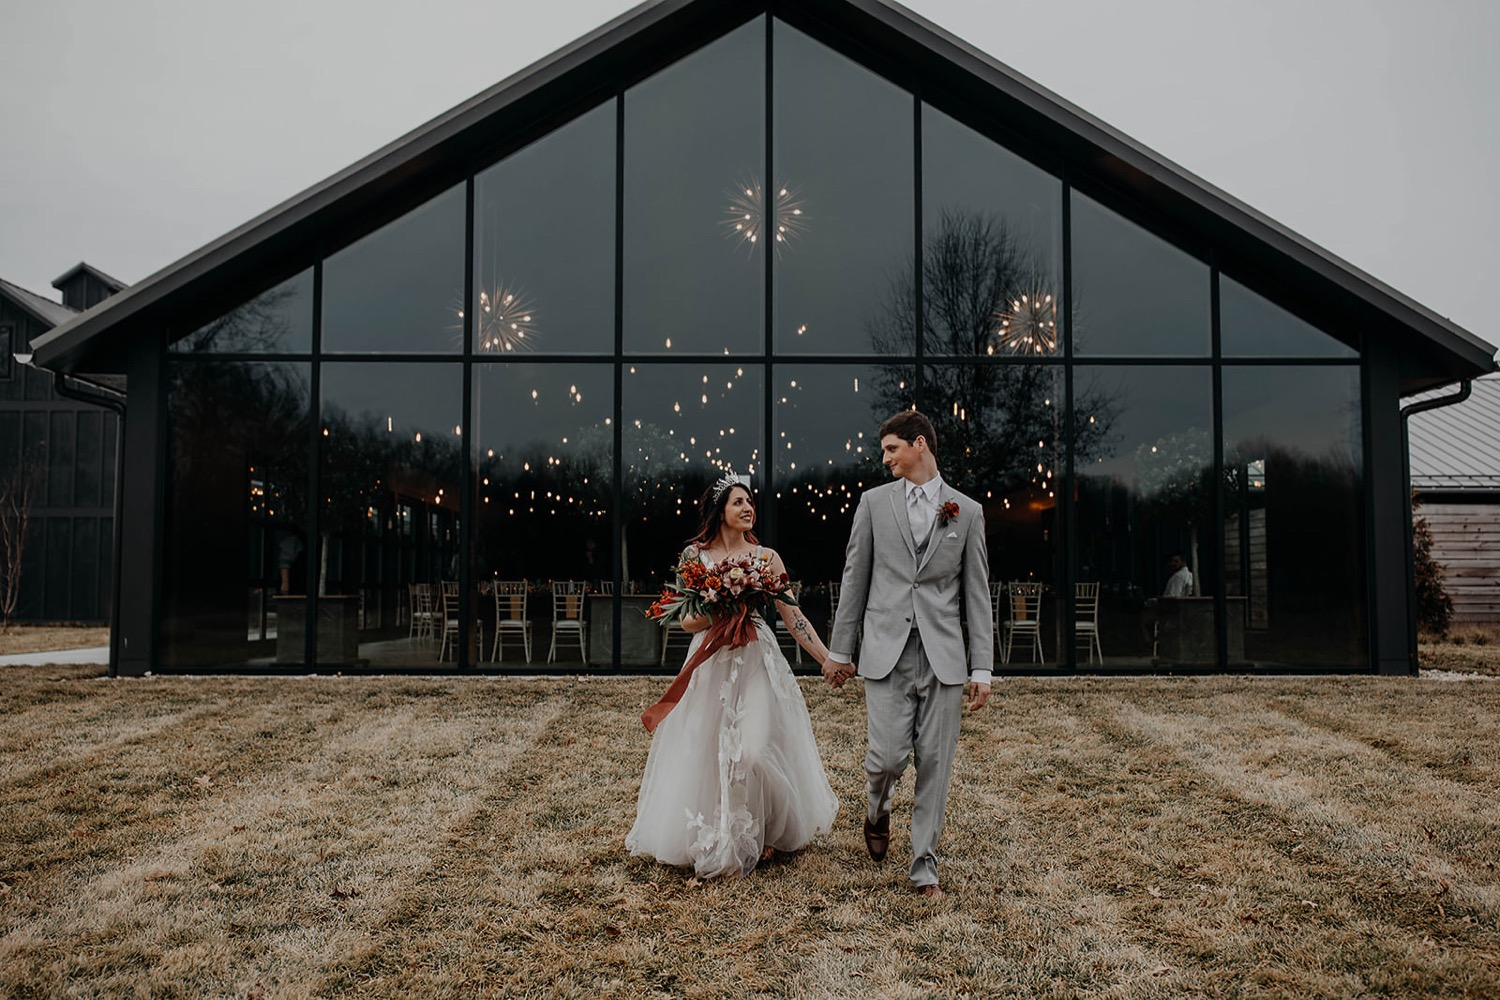 witchy-winter-wedding-bre-smo-at-oak-grove-jorgensen-farm-wedding-columbus-ohio-grace-e-jones-photography243_1500.jpg